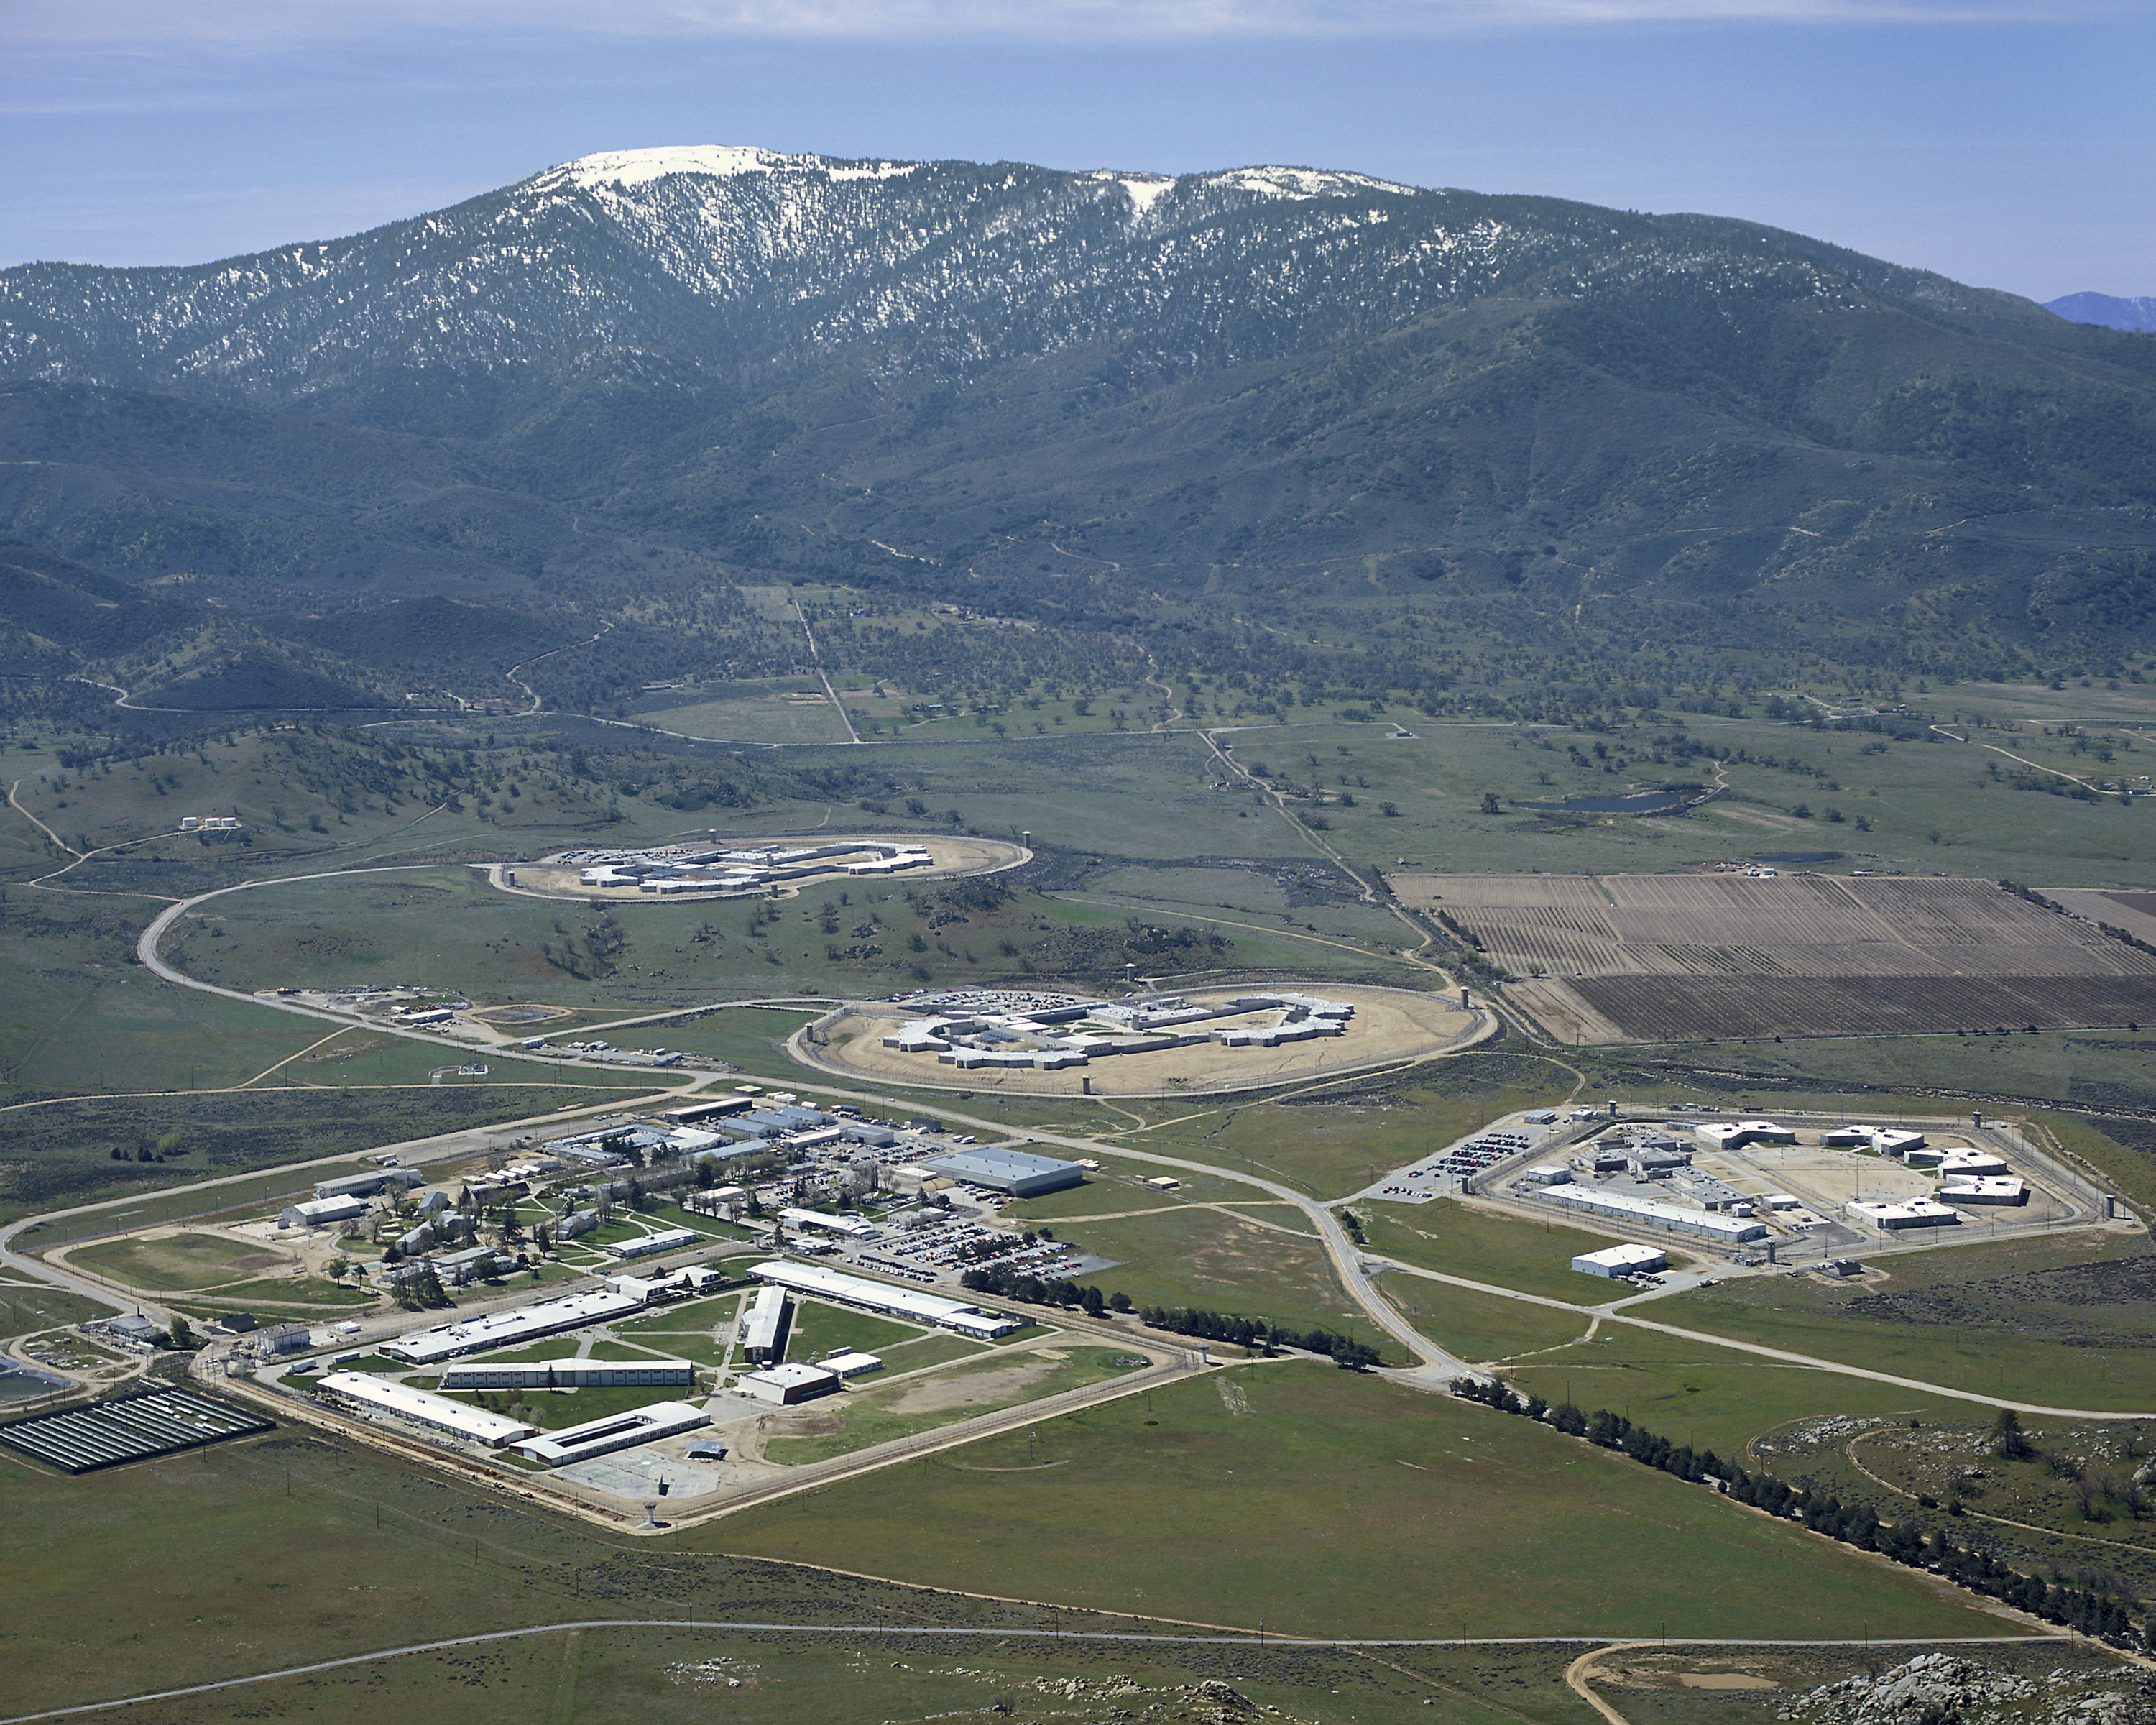 california correctional facility inmate location man name prison state